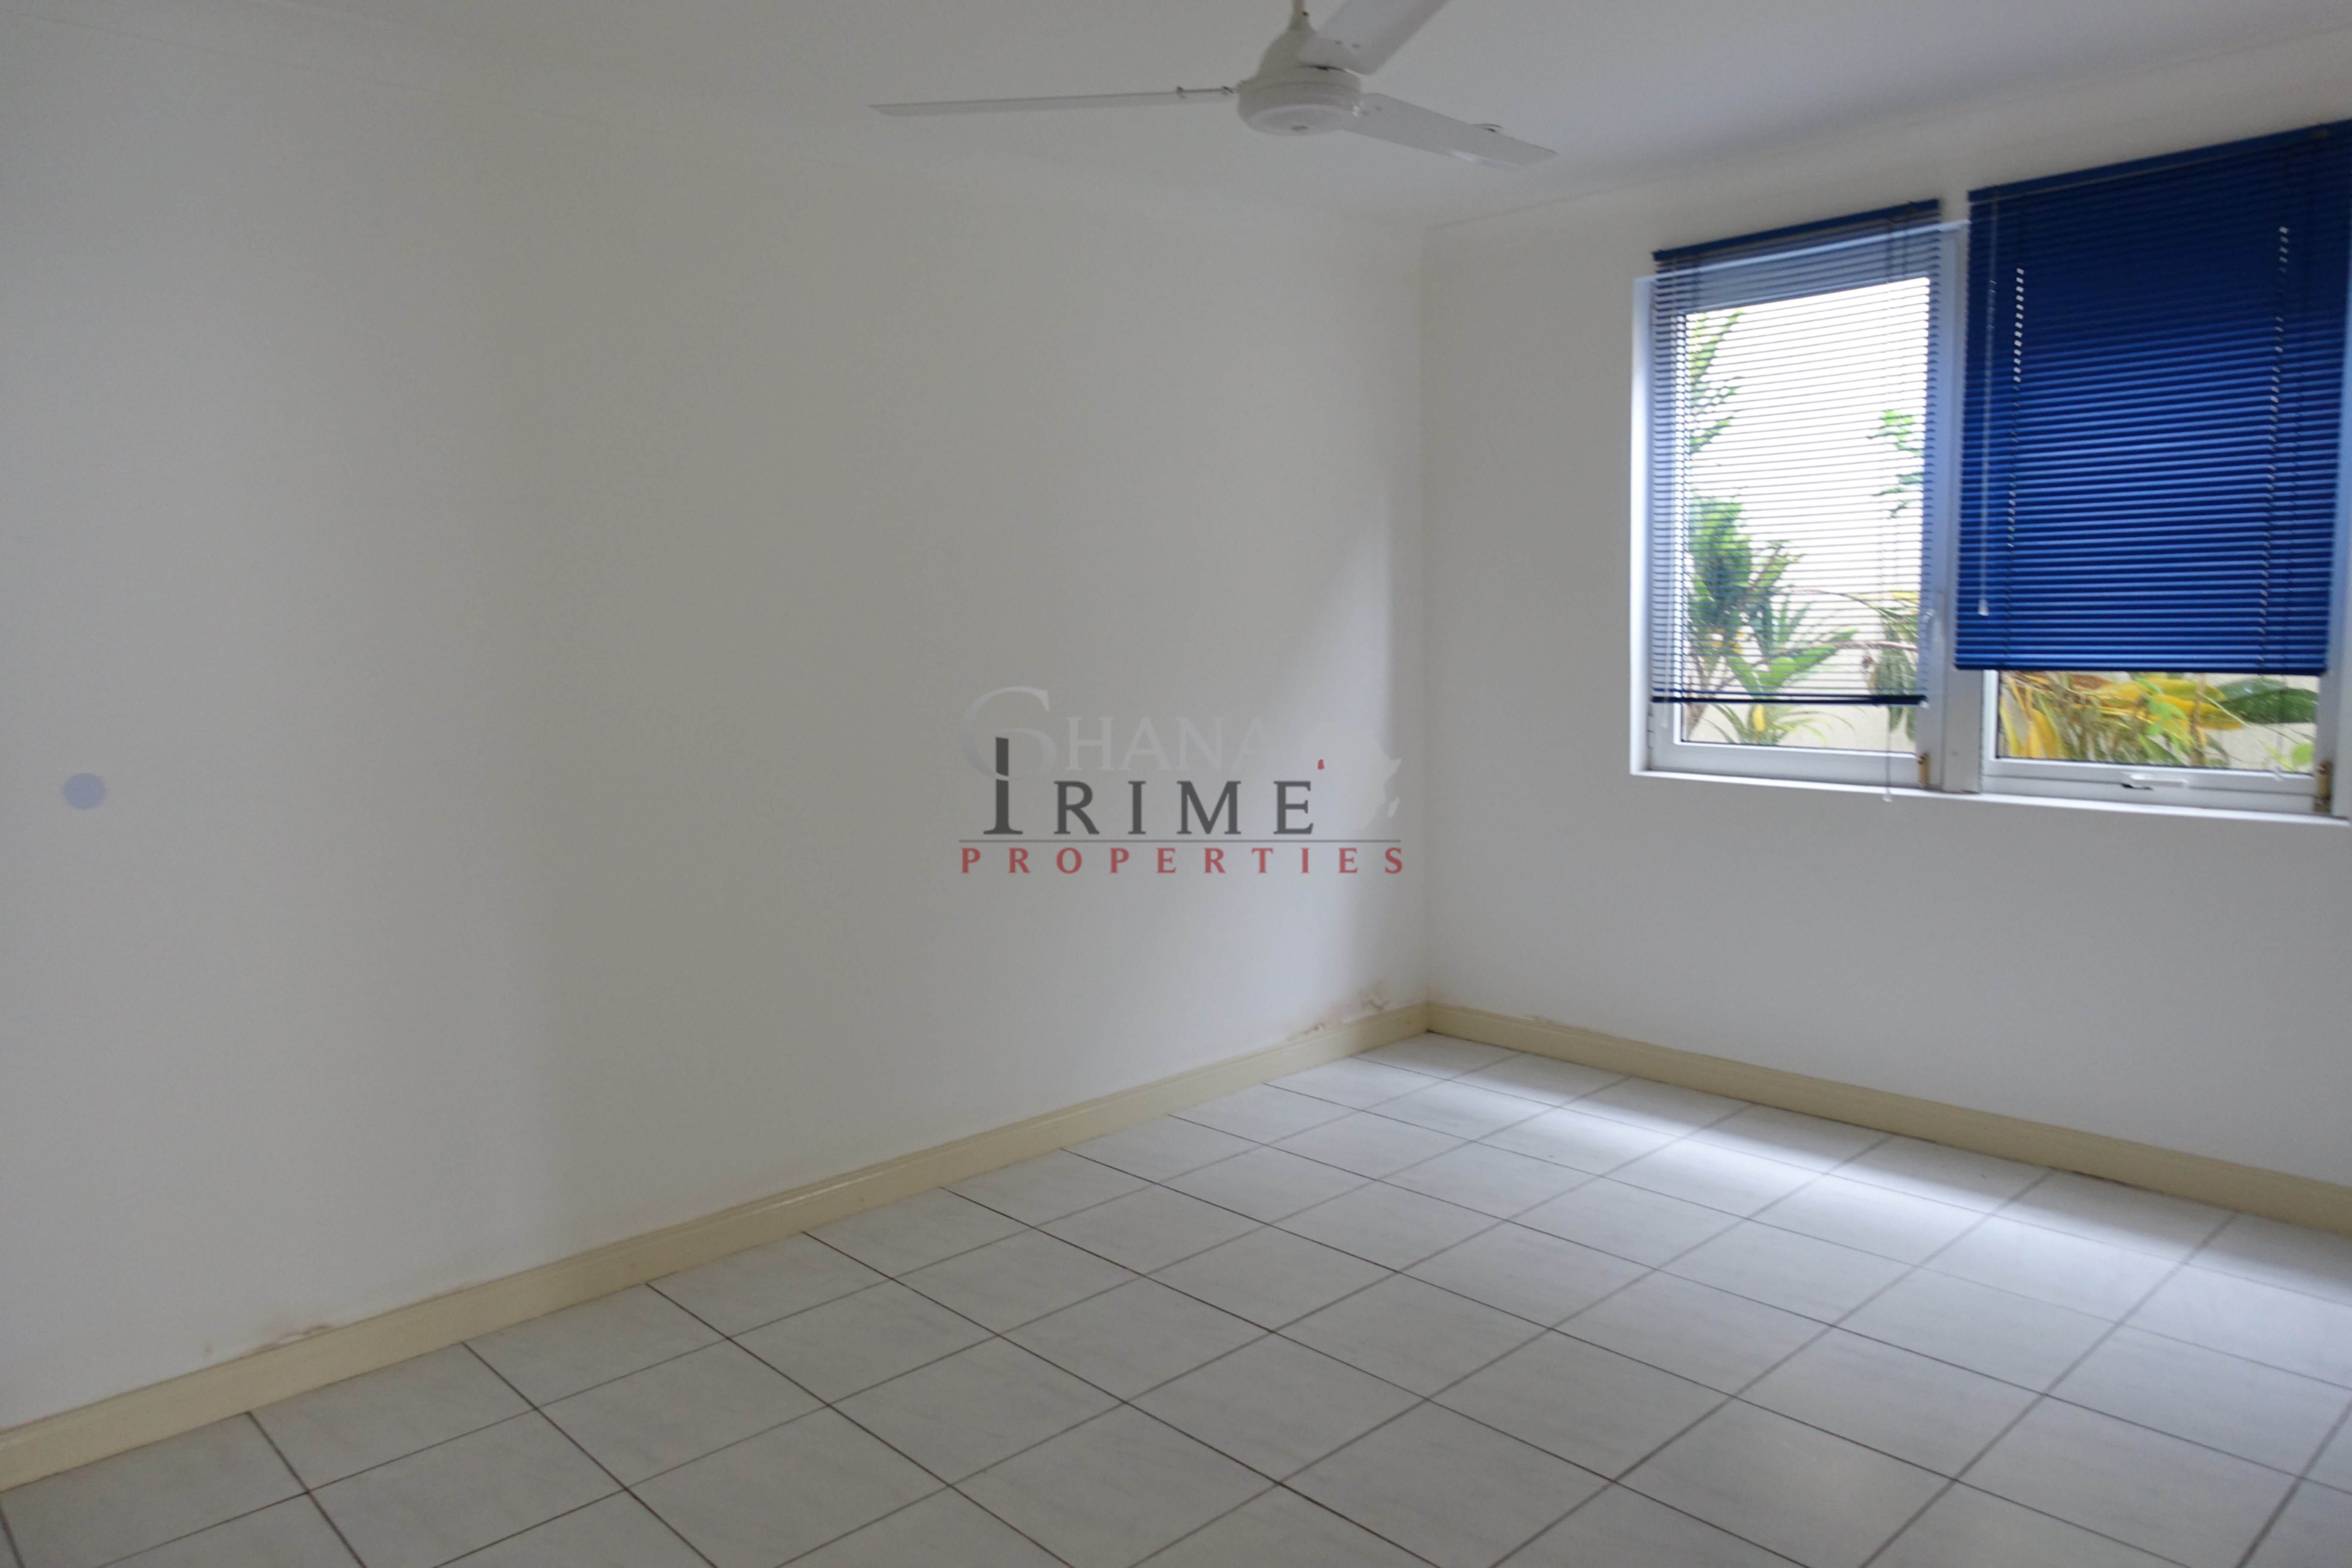 4 Bedroom Luxury Unfurnished Townhouse For Sale In Cantonments 5